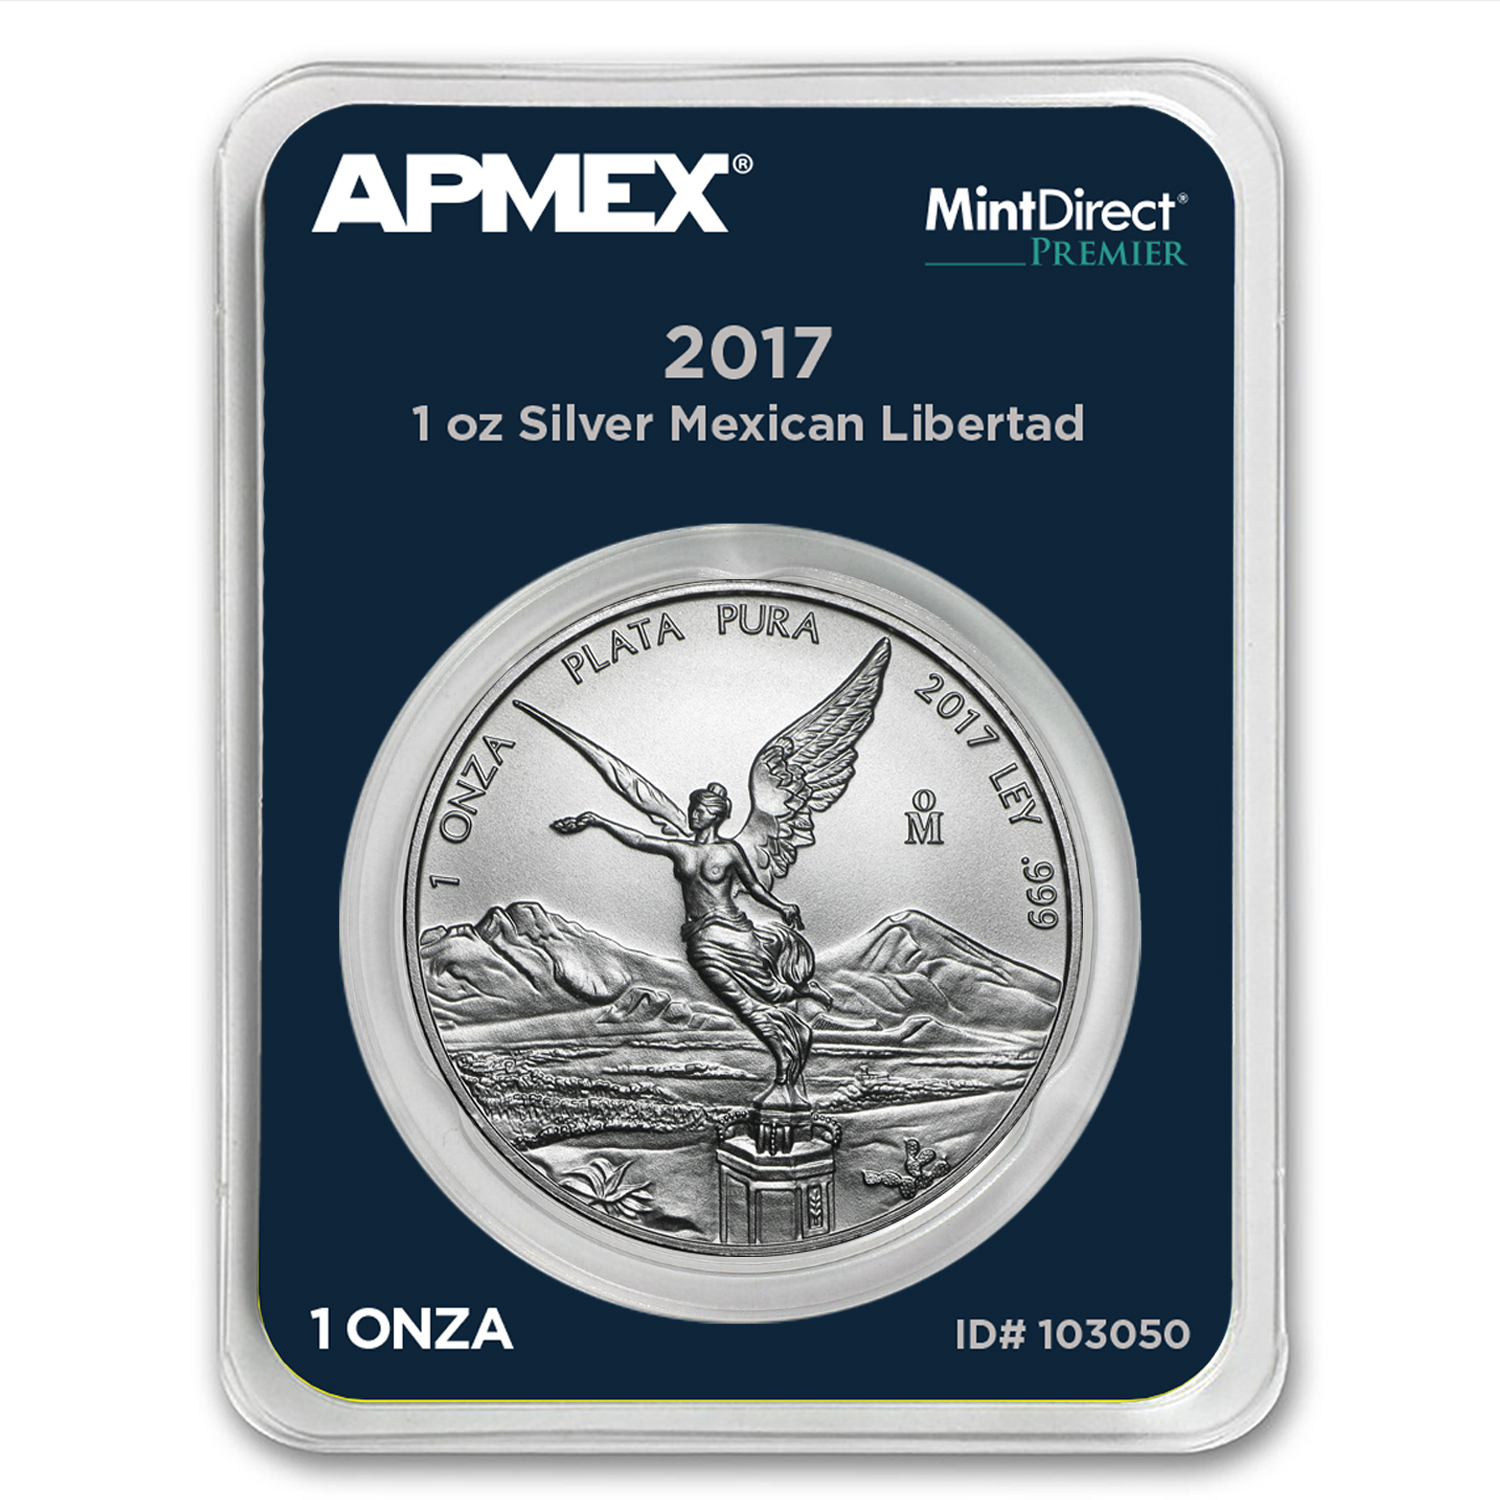 2017 Mexico 1 oz Silver Libertad (MintDirect® Premier Single)